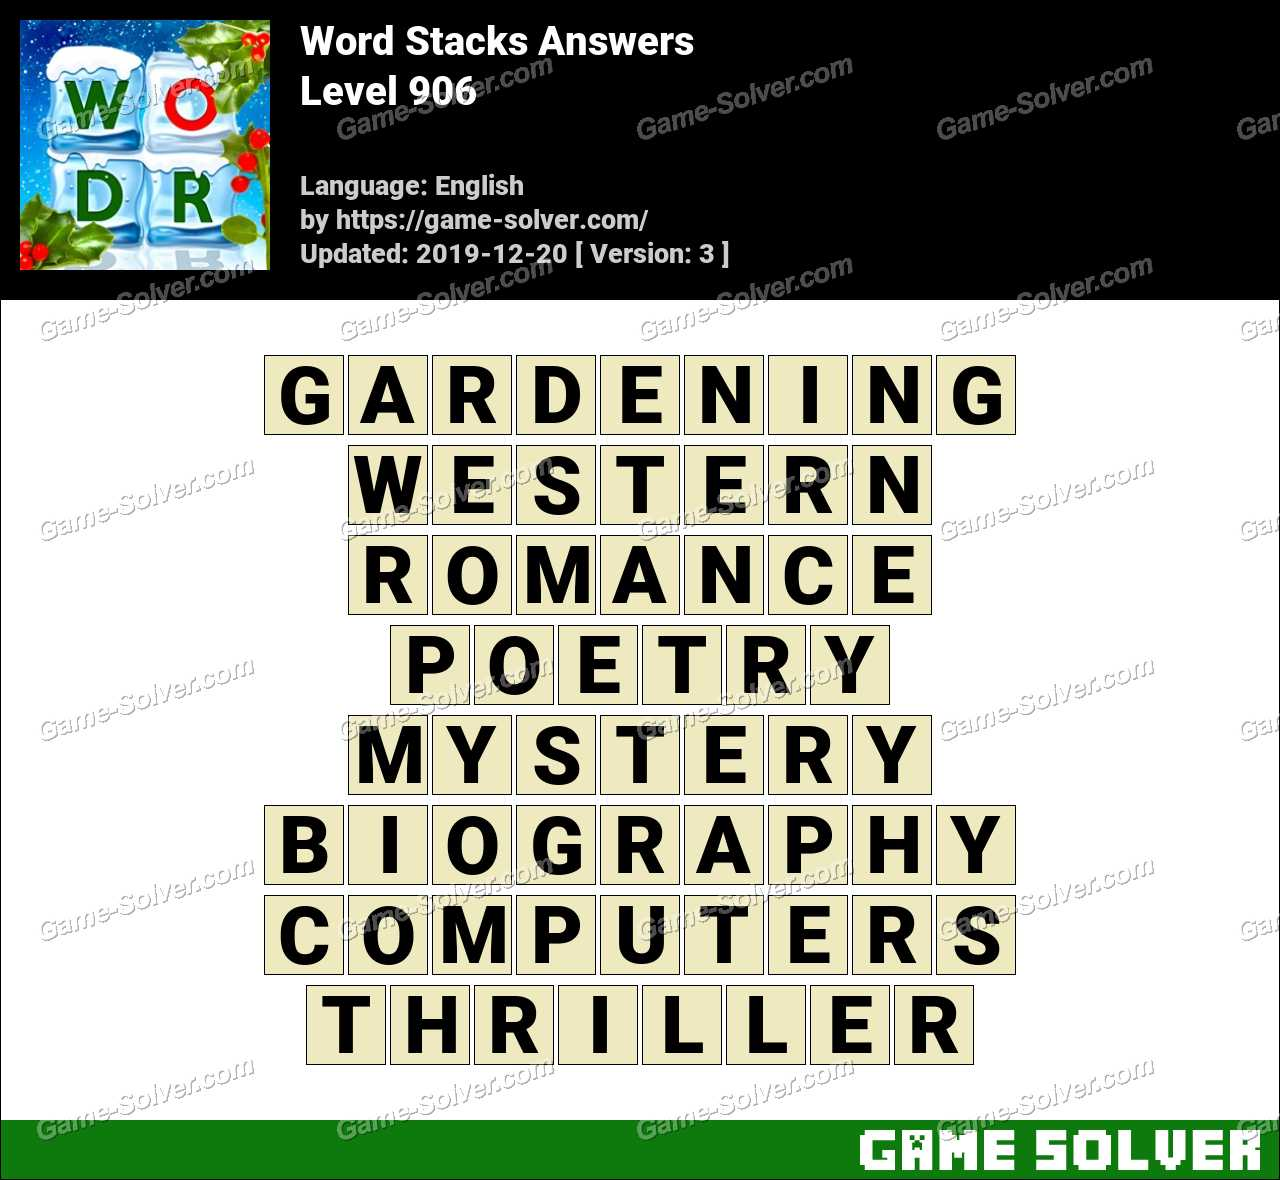 Word Stacks Level 906 Answers